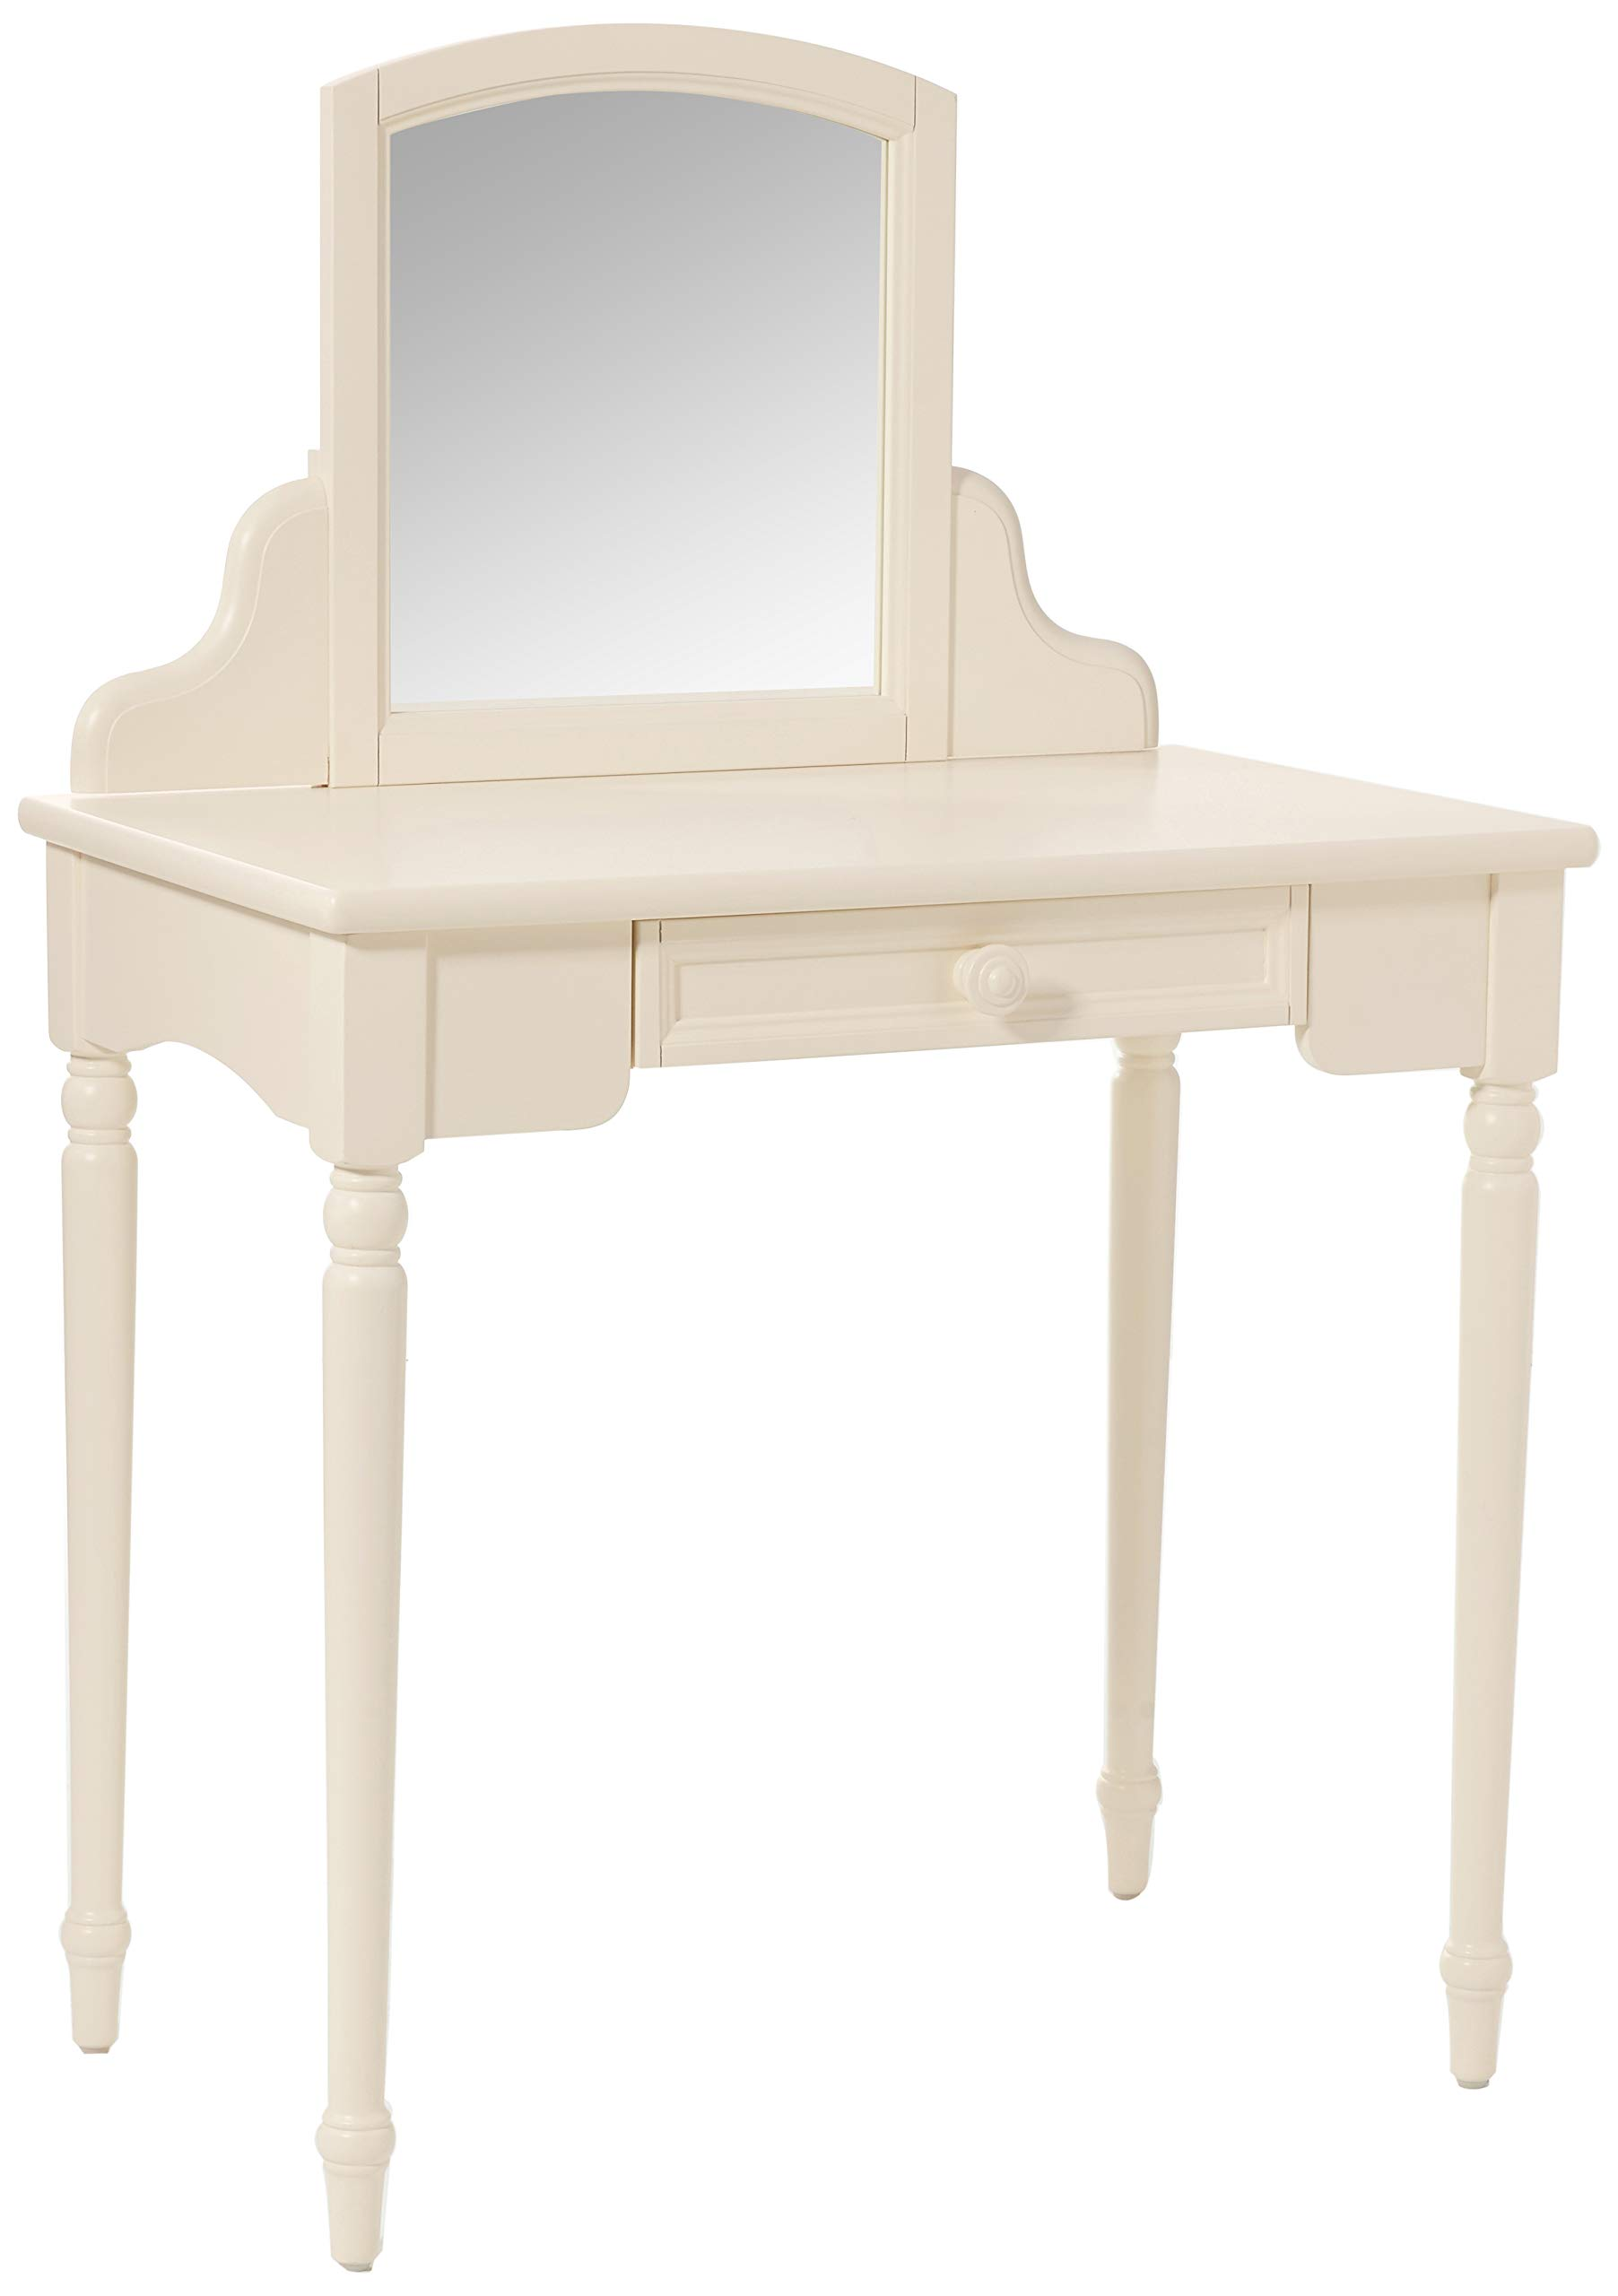 Carriage House, Children Vanity Table with Mirror Storage, Children's Furniture, Vintage White